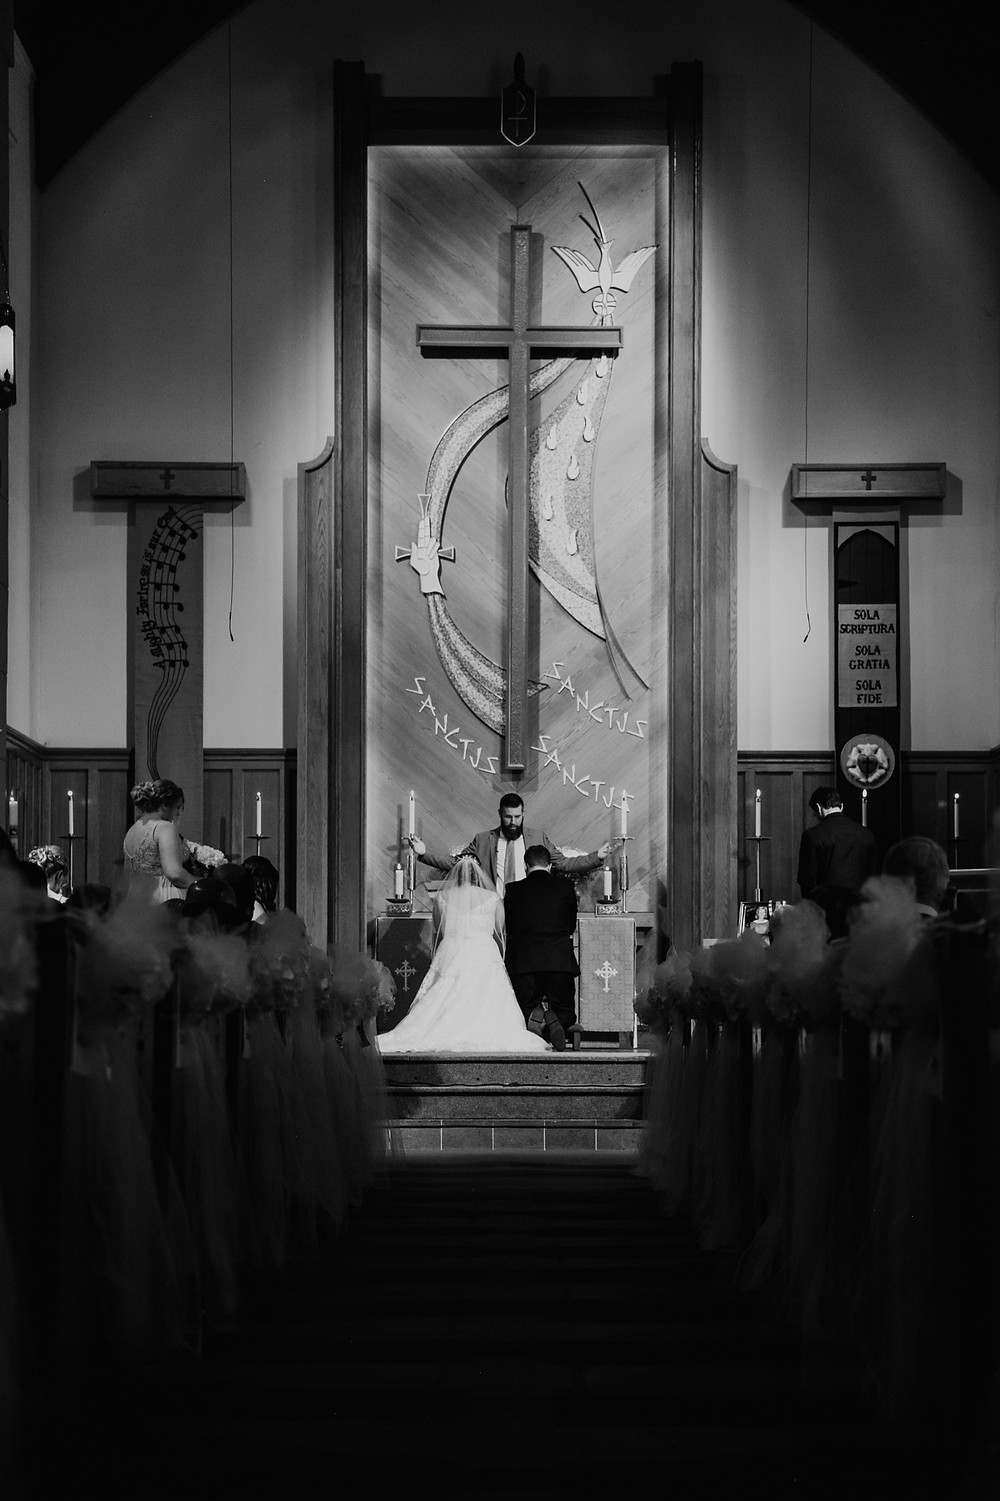 Bride and groom kneeling at altar during traditional Catholic wedding ceremony. Photographed by Nicole Leanne Photography.